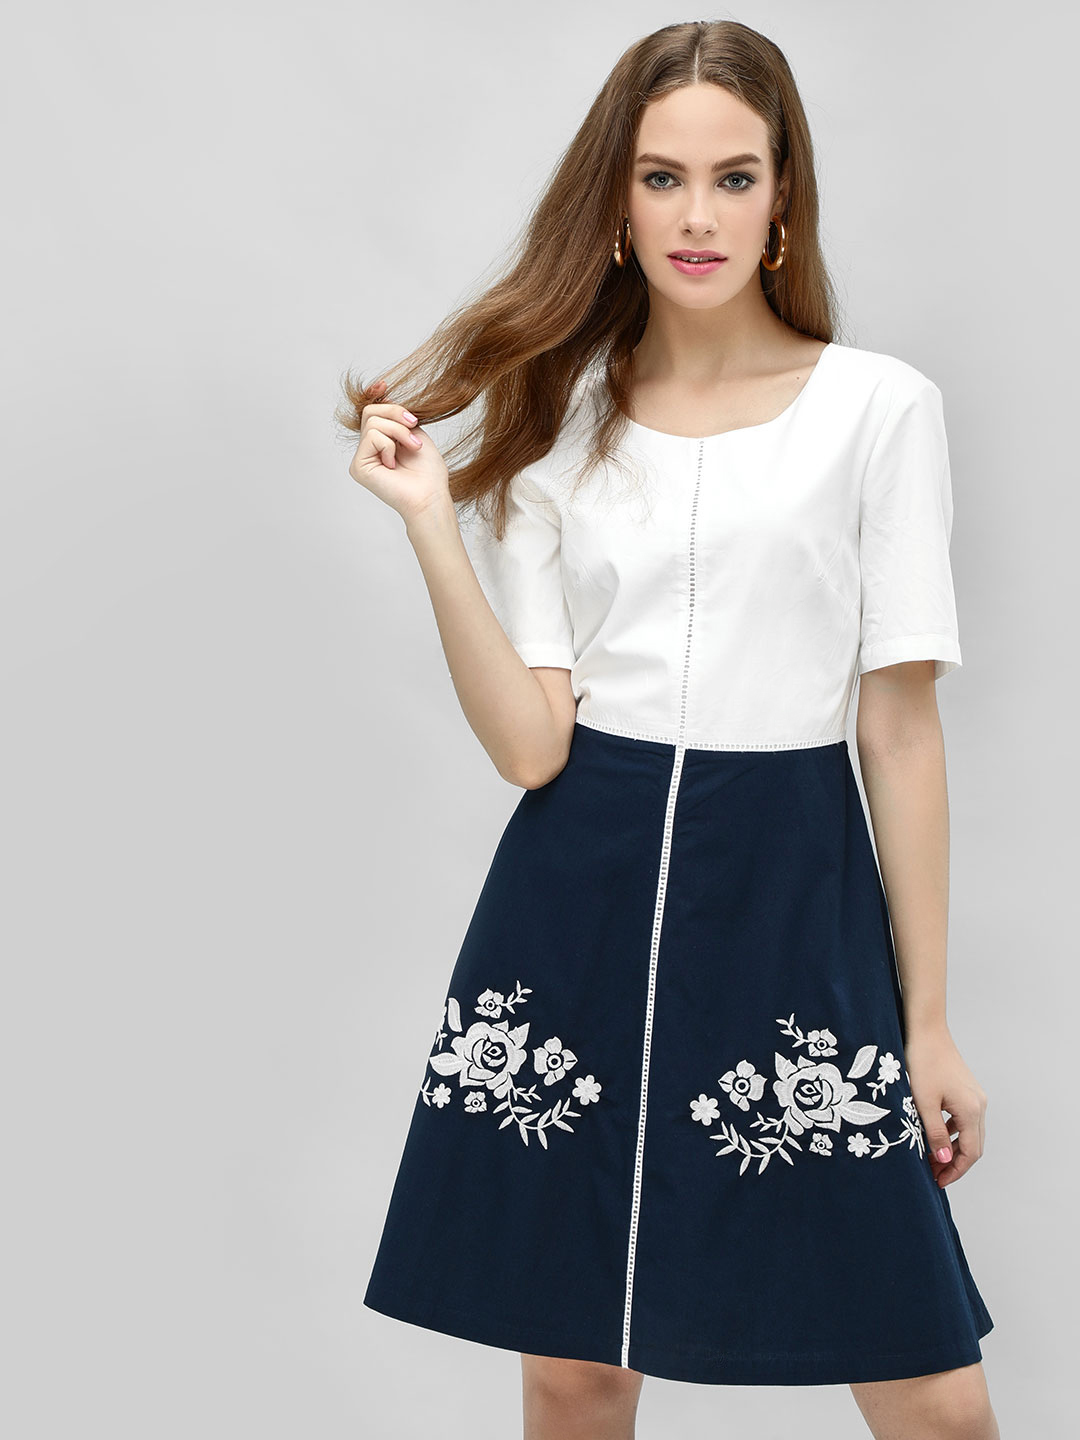 PostFold WHITE/NAVY Colour-Block Floral Embroidered Skater Dress 1